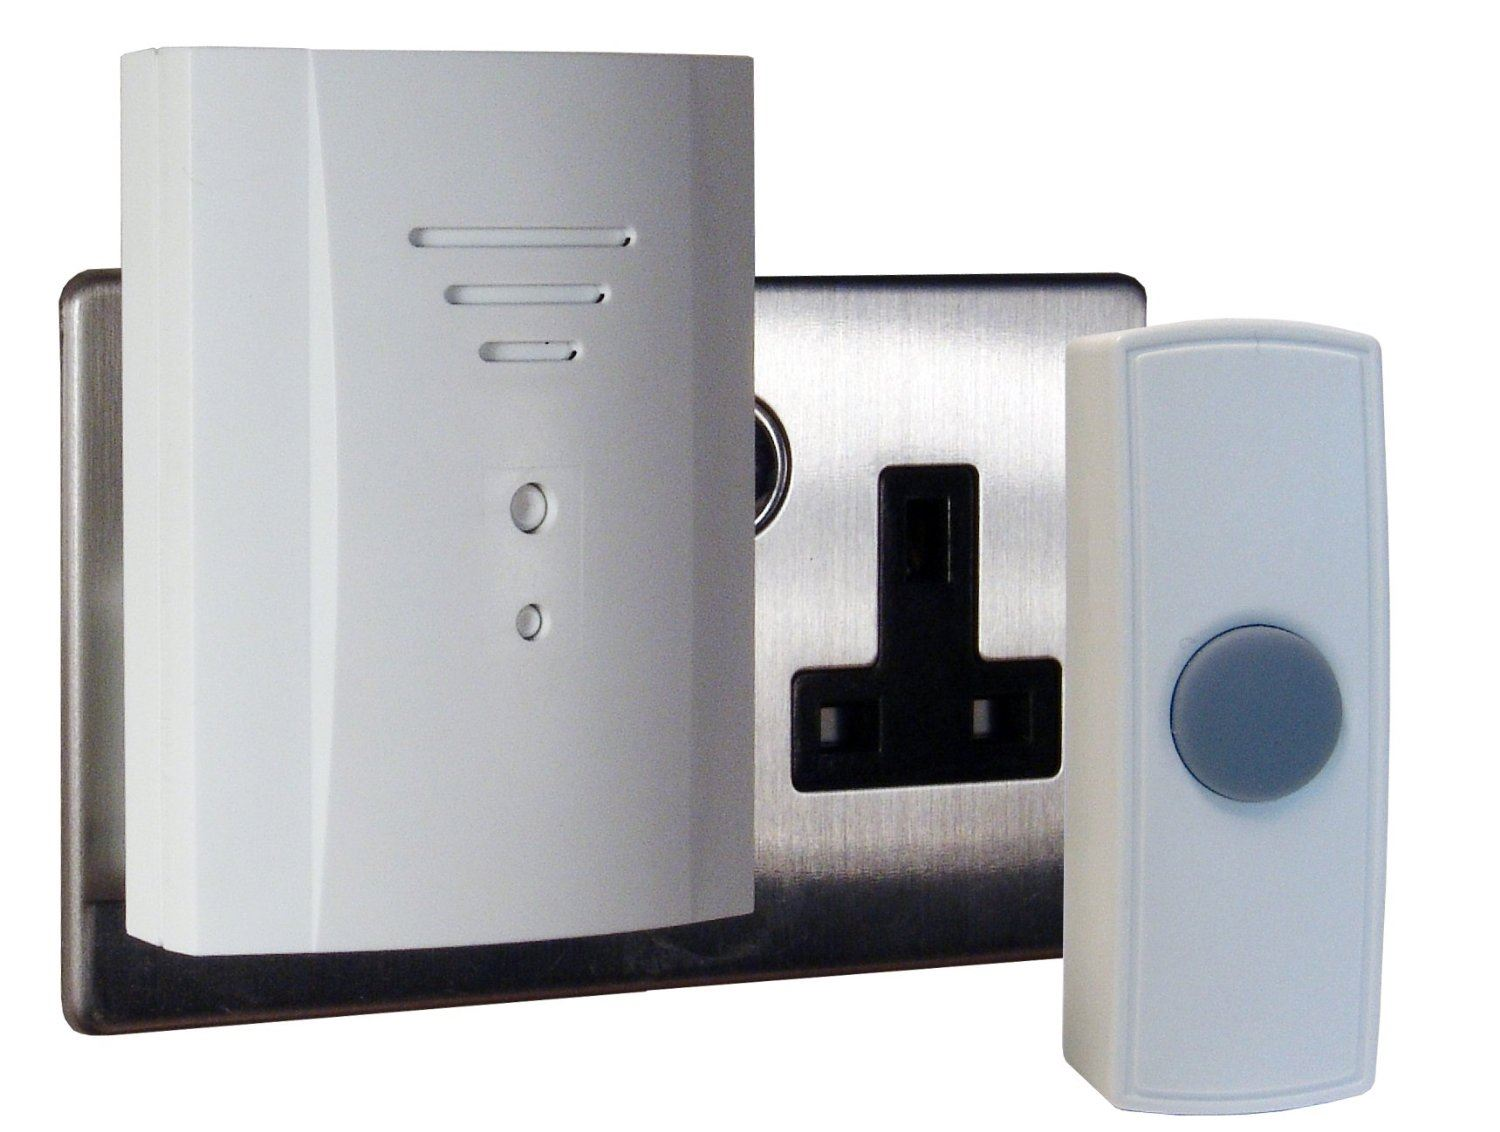 music remote volume range and showroom doors chime caihaohong ebell powered kit switch door wireless button china product detailxjrecirogghk operating battery home adjusted max levels receiver to doorbell